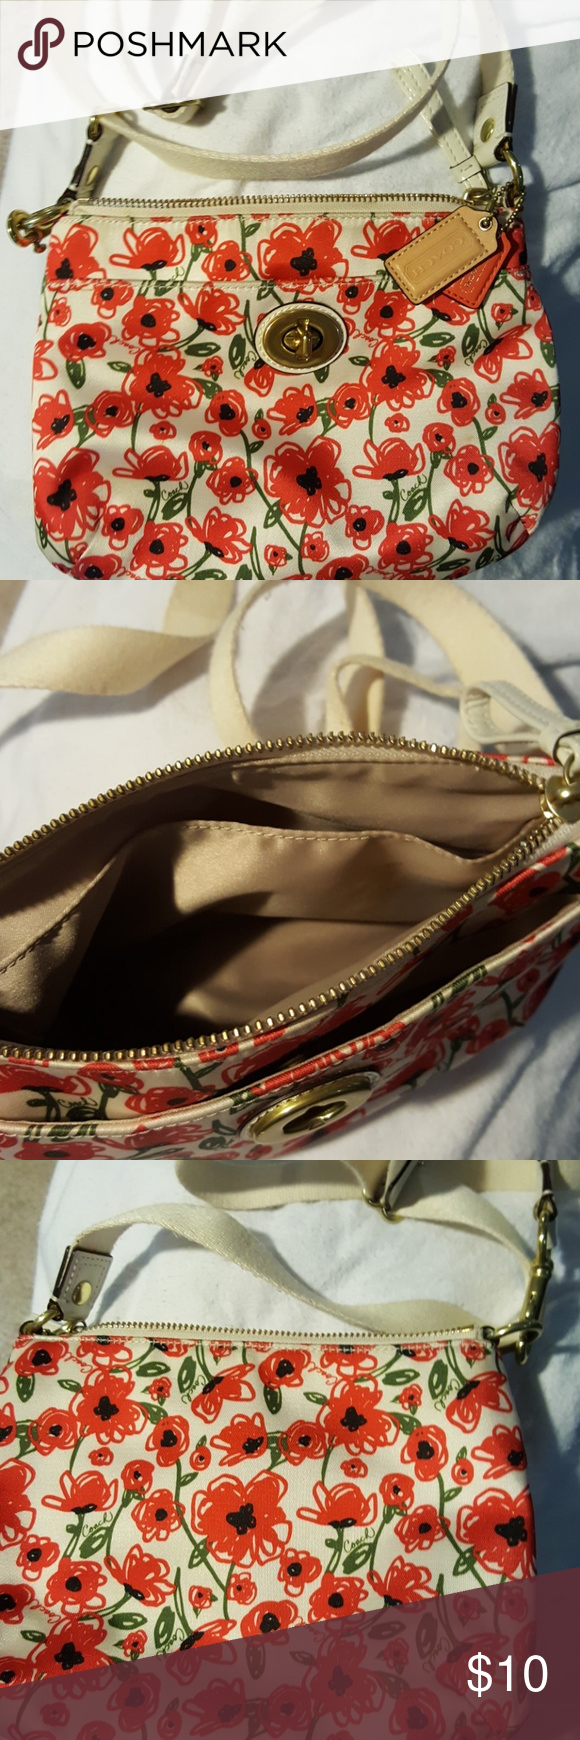 Coach Red Flower Crossbody Bag White With Red Flowers 9 Wide 7